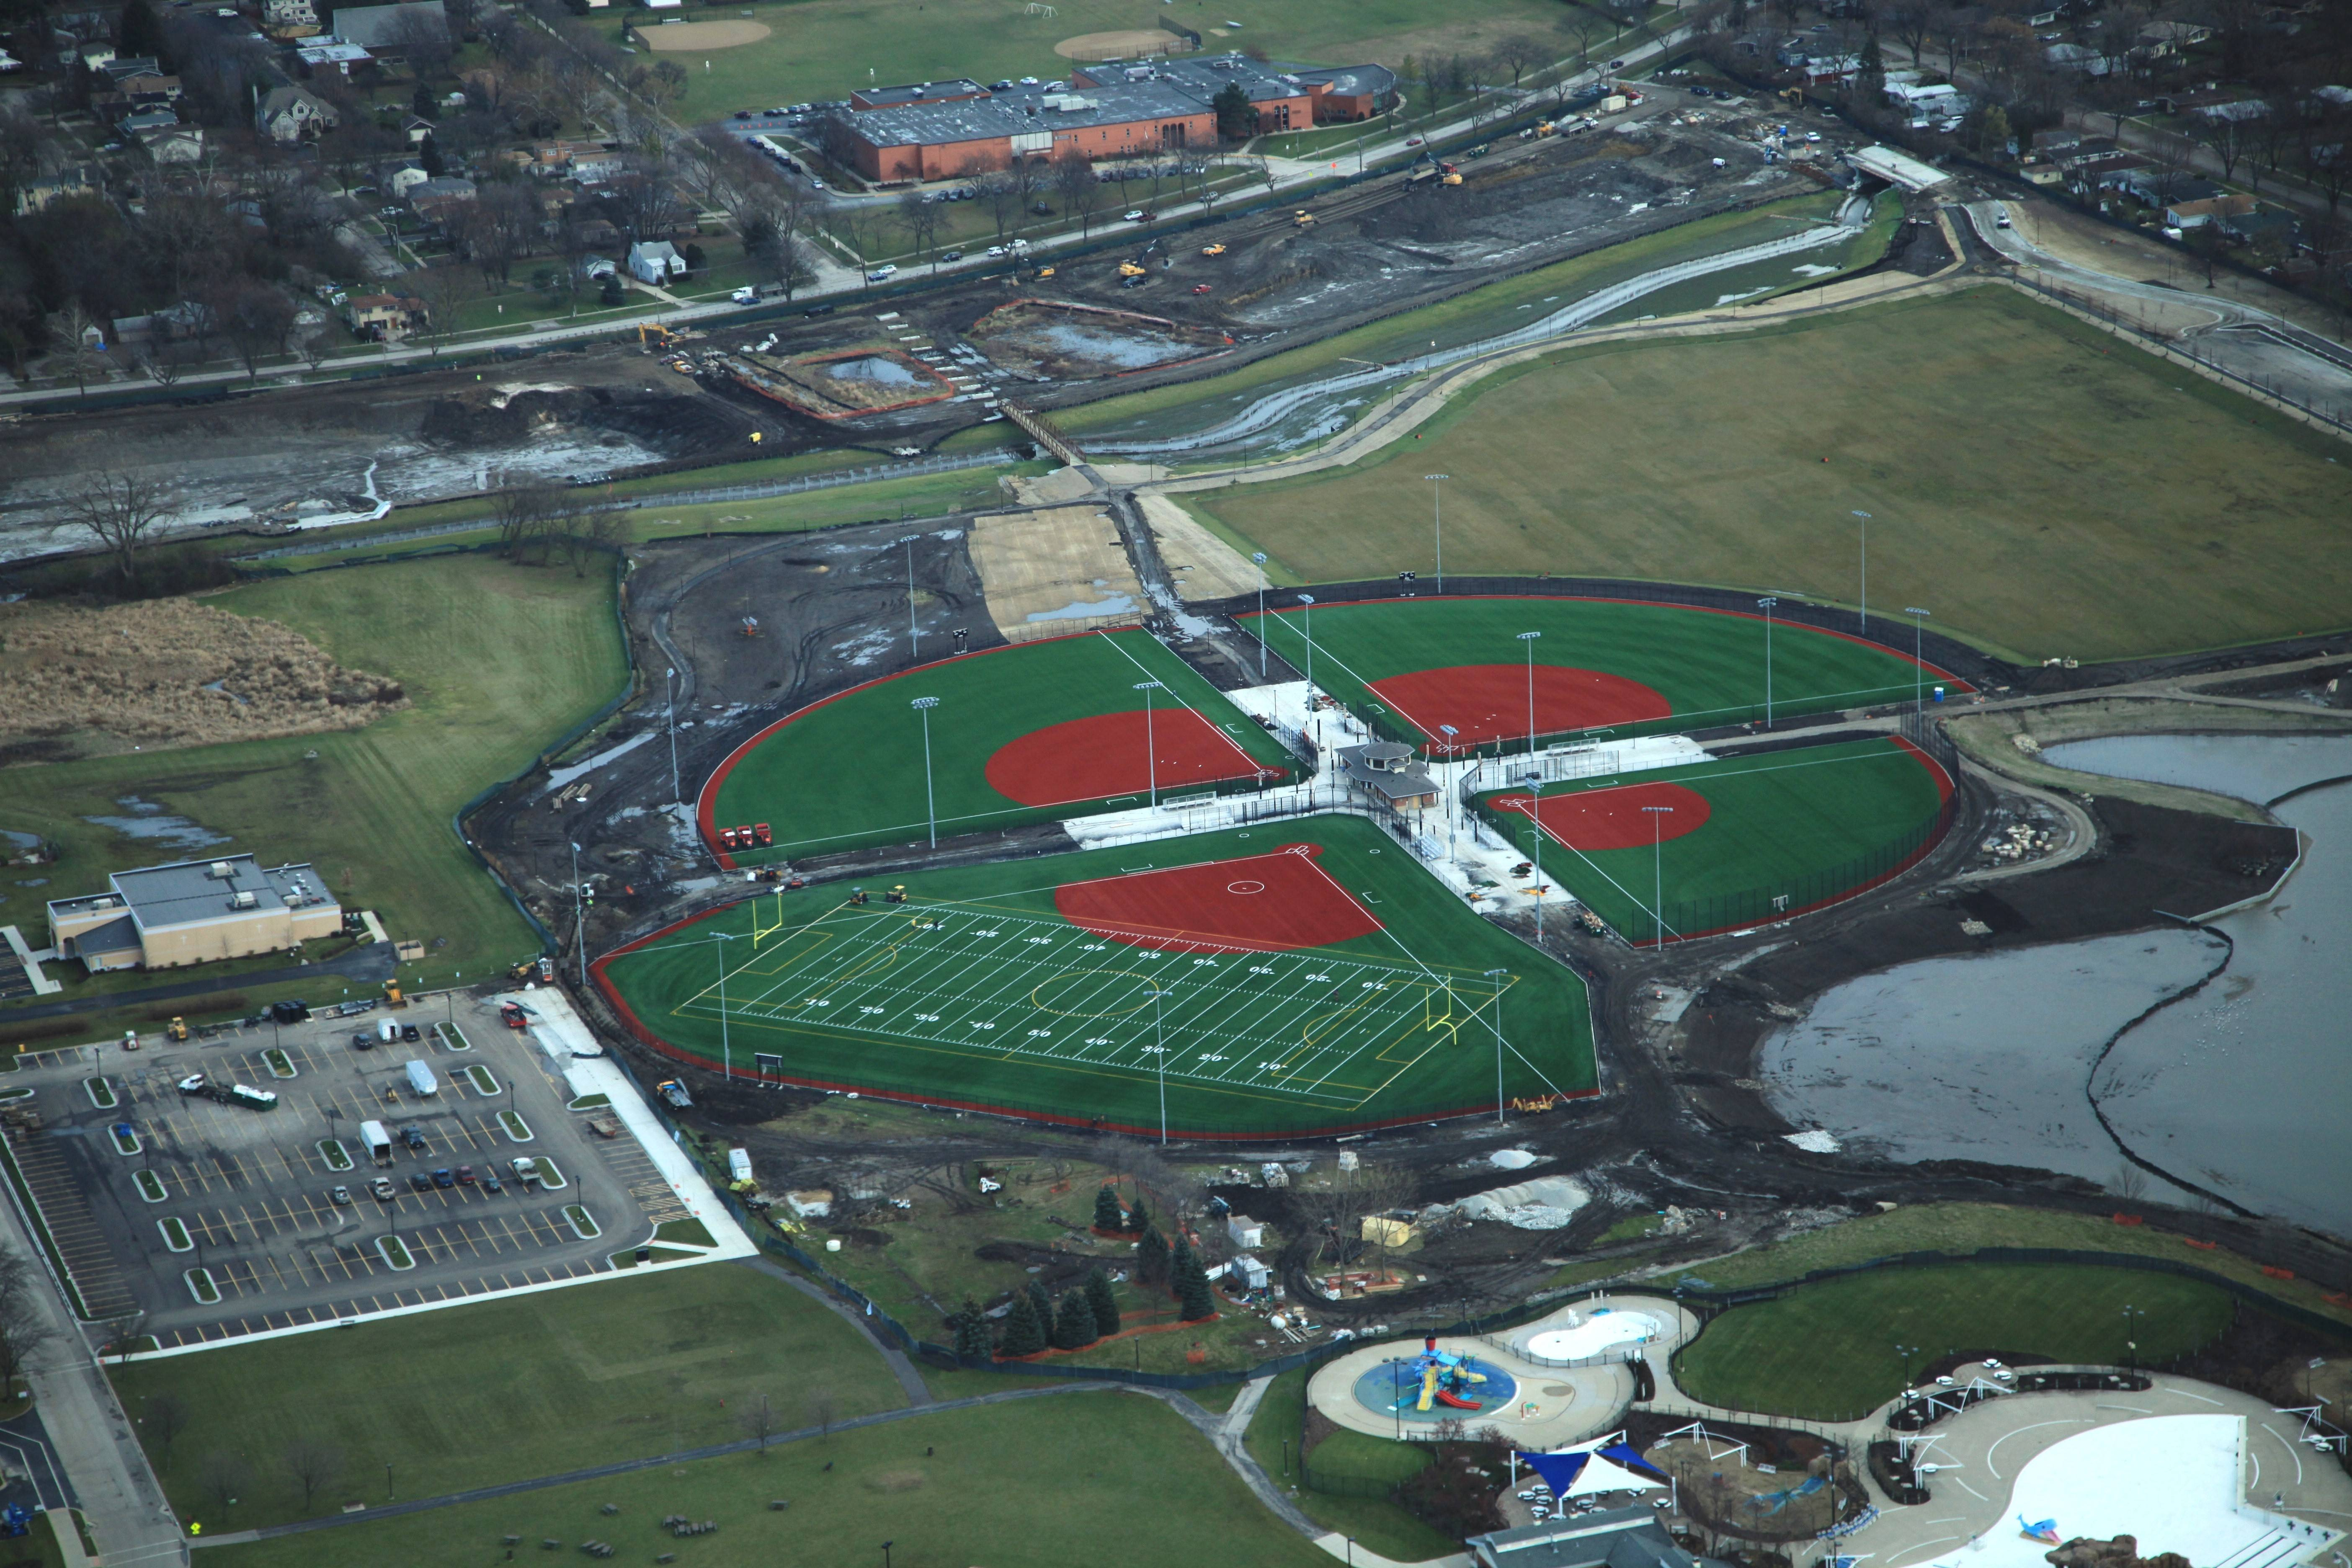 An adult softball tournament early next month will be among the first uses of the Wheeling Park District's new athletic complex in Heritage Park, built as part of a $38 million park renovation. The tourney will have to go on without beer sales, however. The Wheeling village board shot down a proposal this week to allow beer sales during the event.